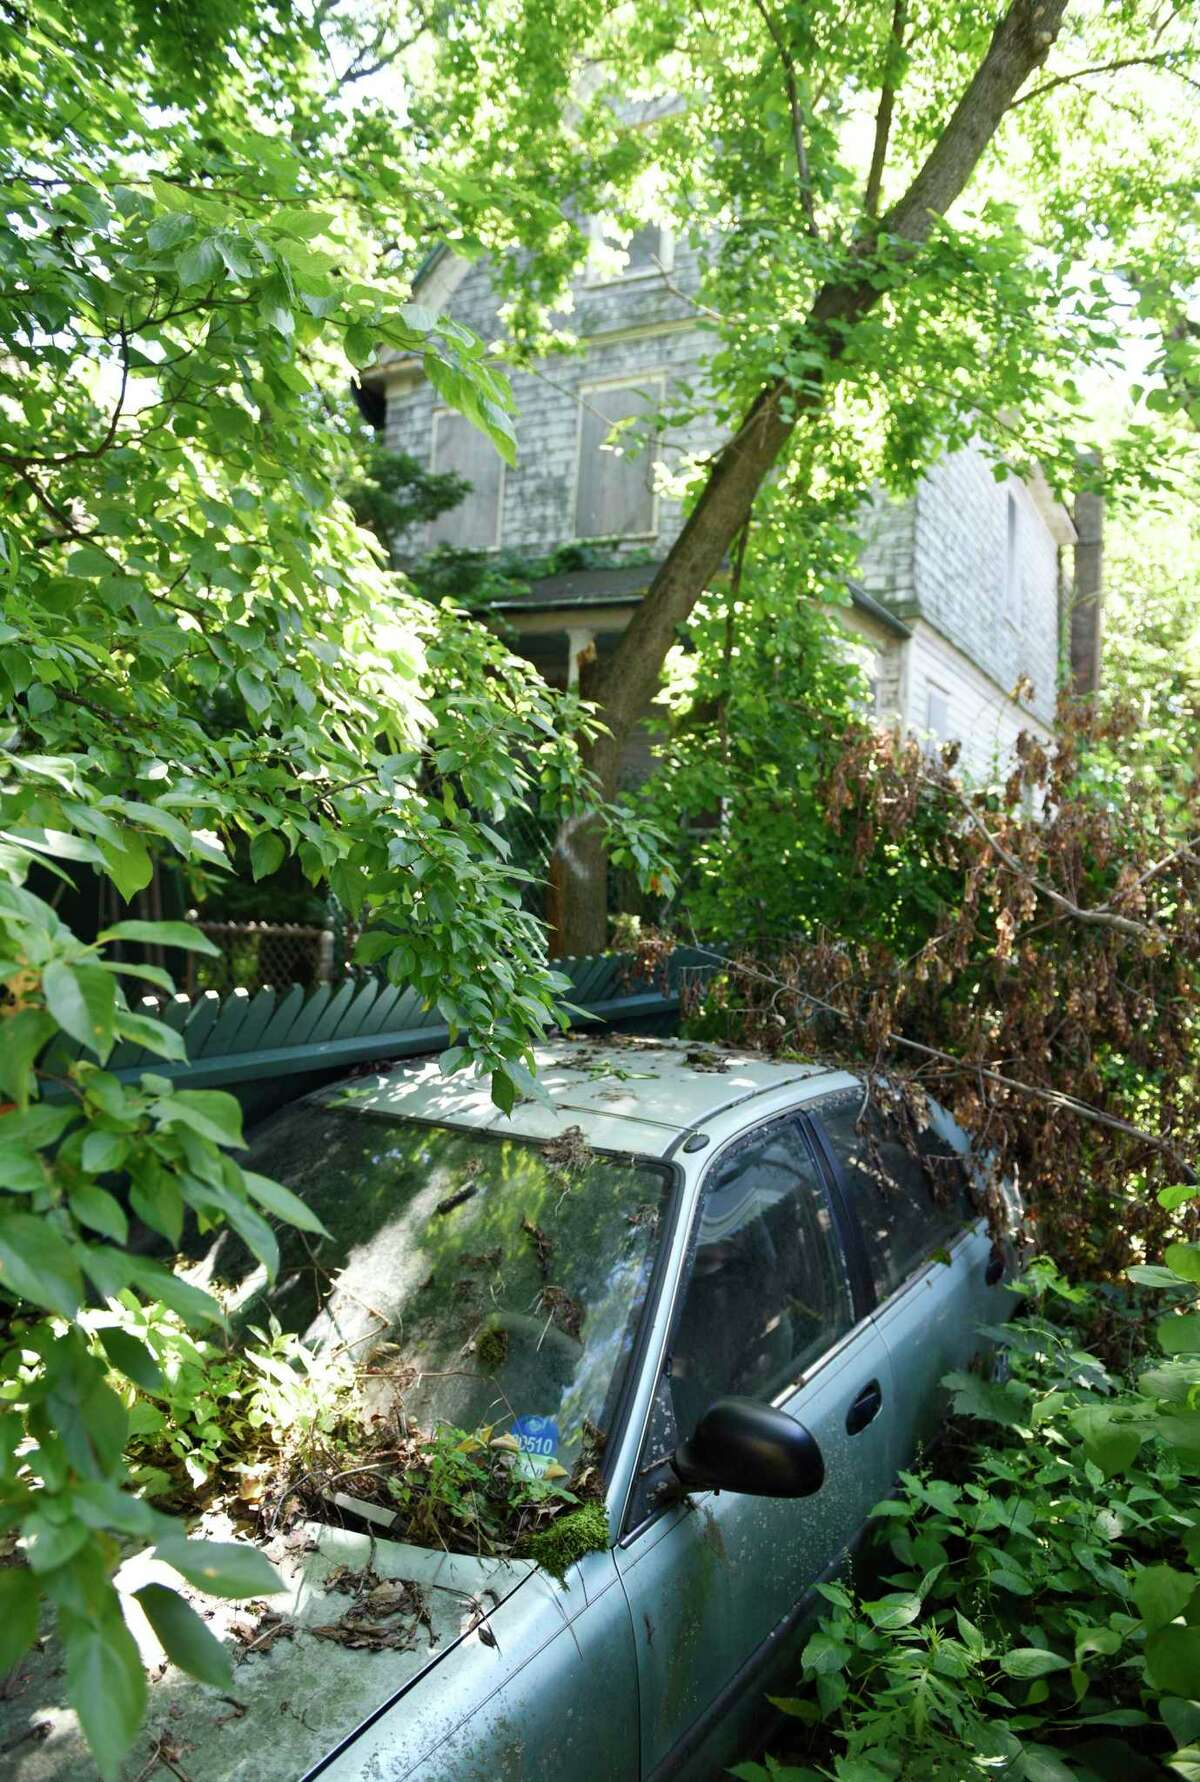 A blighted home on Mead Avenue in the Byram section of Greenwich, Conn., photographed on Wednesday, June 26, 2019. The back of the house has fallen down and trees and weeds have taken over the landscape, rendering the house unliveable. There have also been reports of rabid raccoons and other issues.